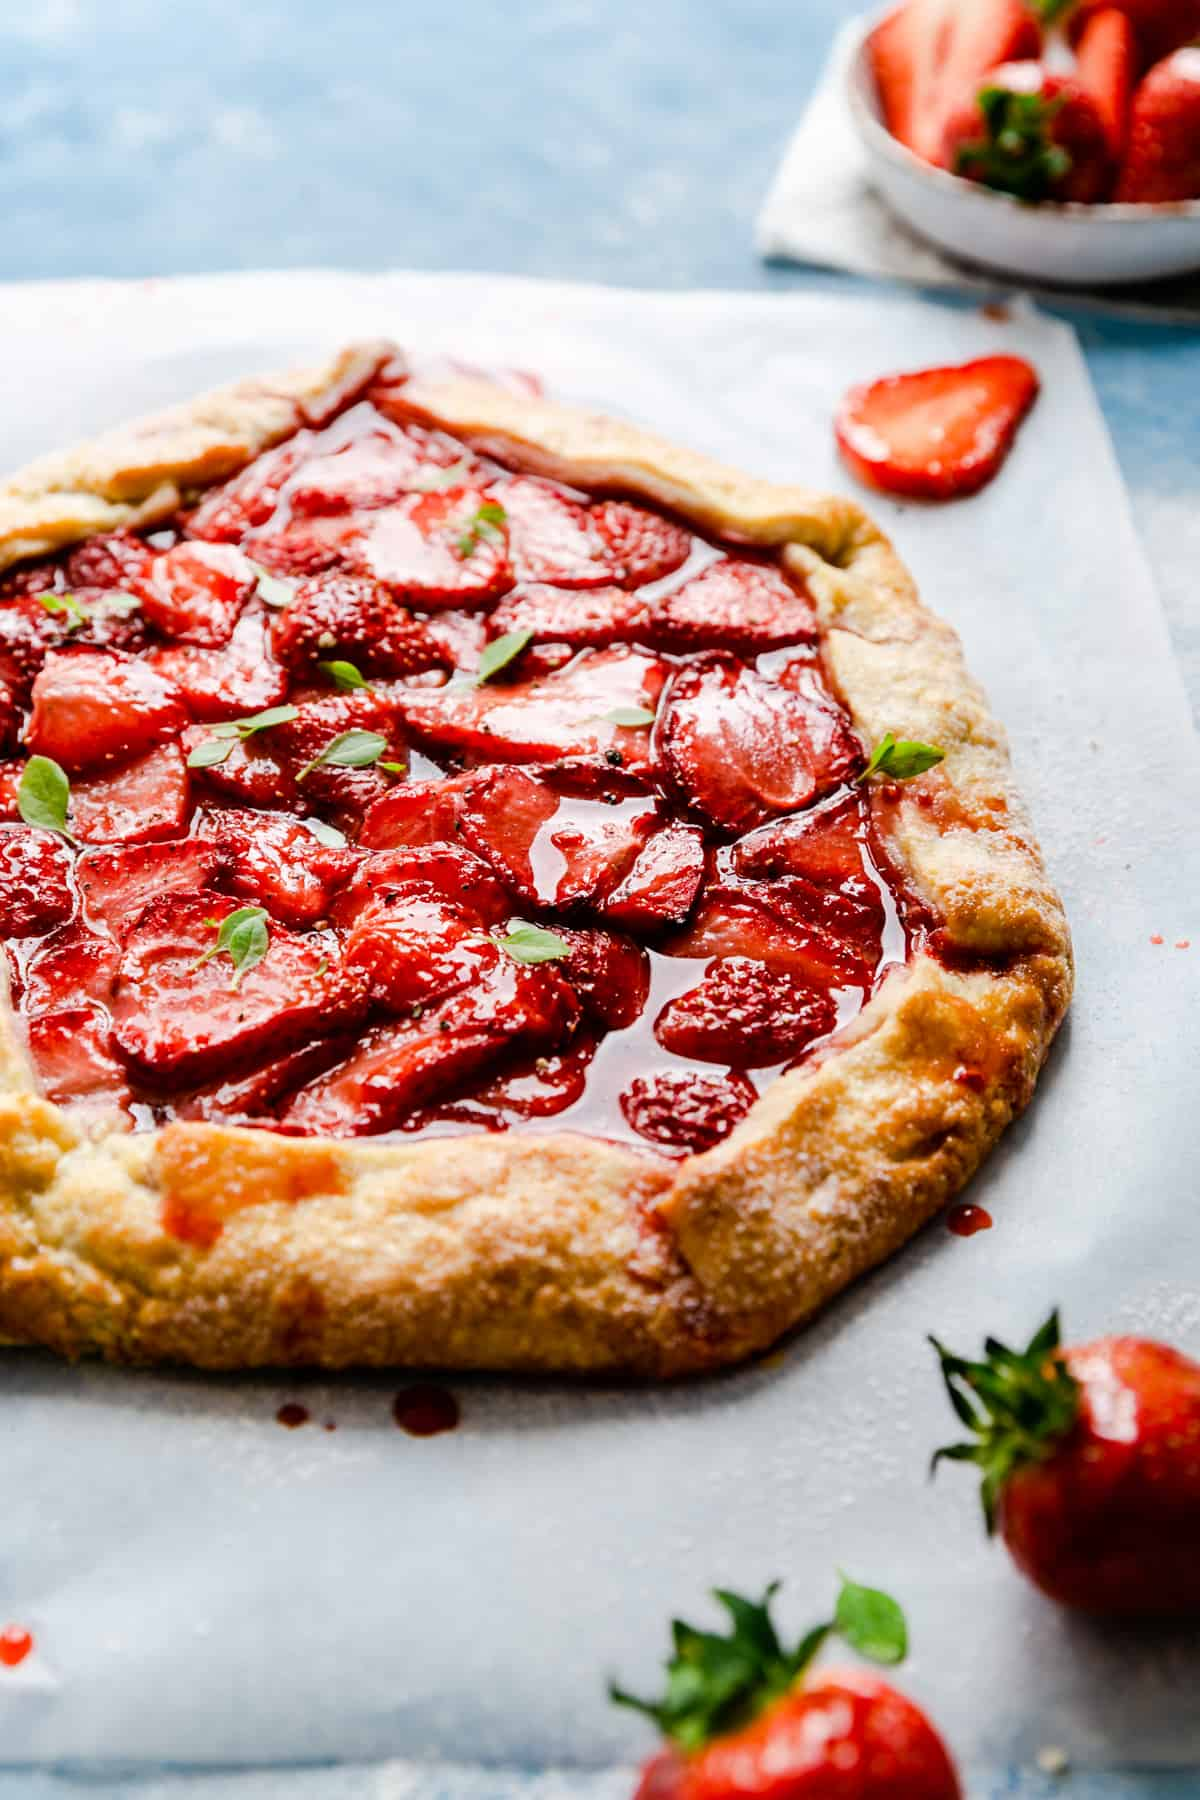 angle shot of strawberry galette with some basil leaves on top